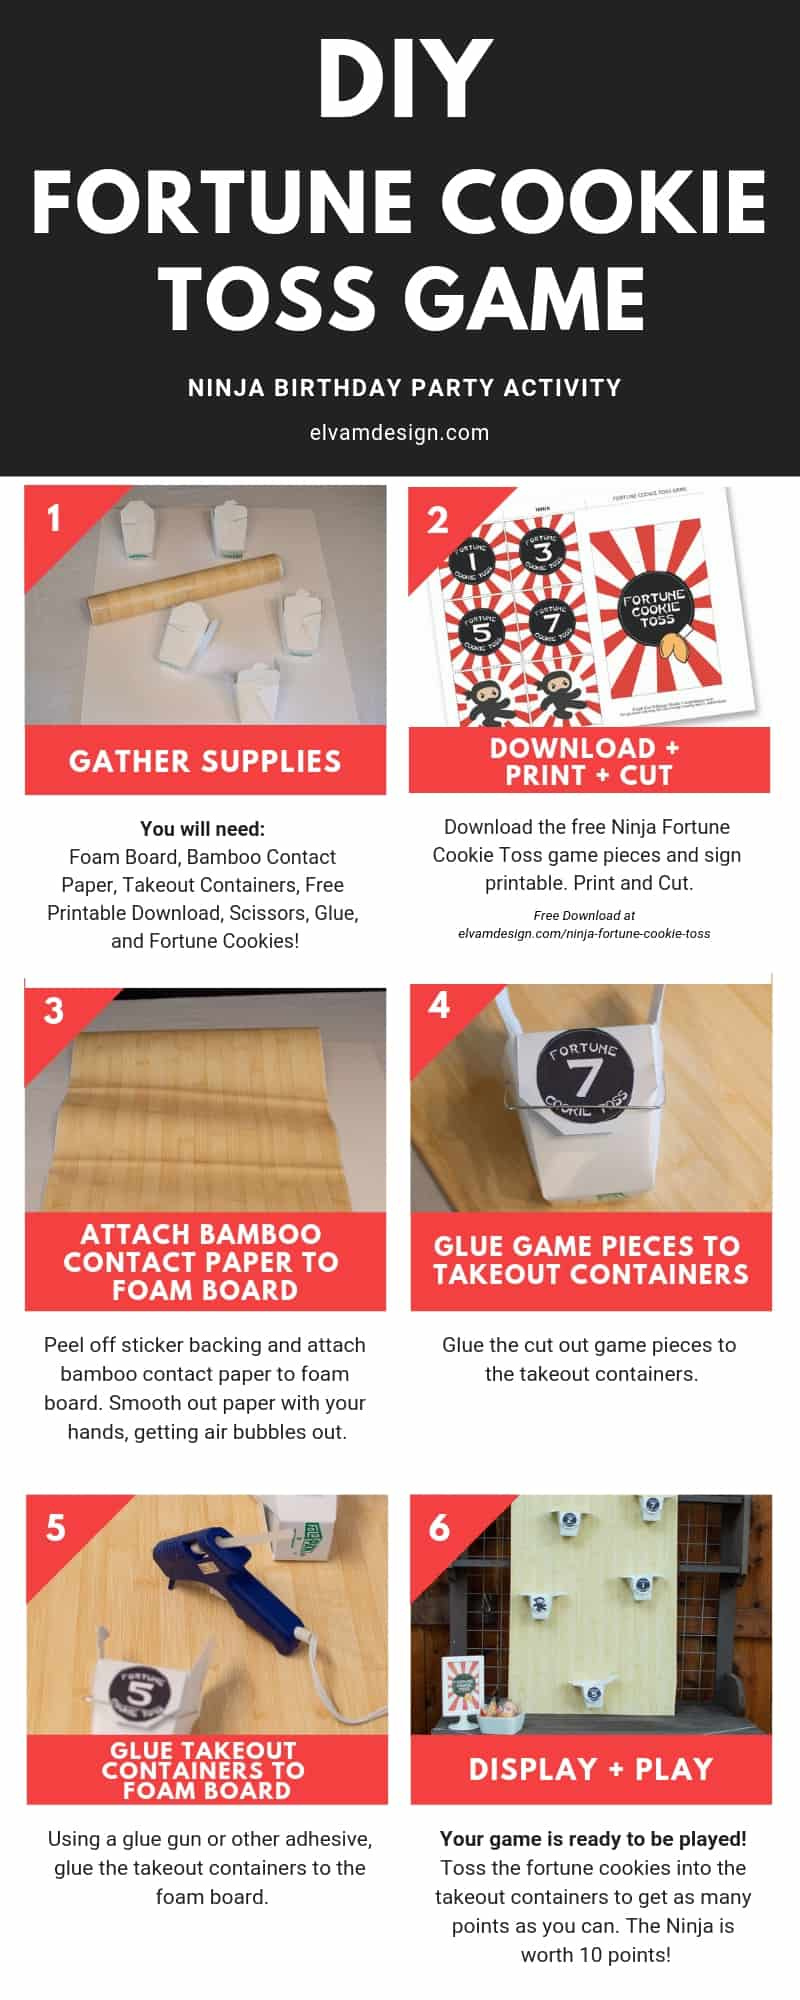 Follow this tutorial to make your own DIY Fortune Cookie Toss Game, the perfect activity for a Ninja-themed birthday party. Free download at elvamdesign.com